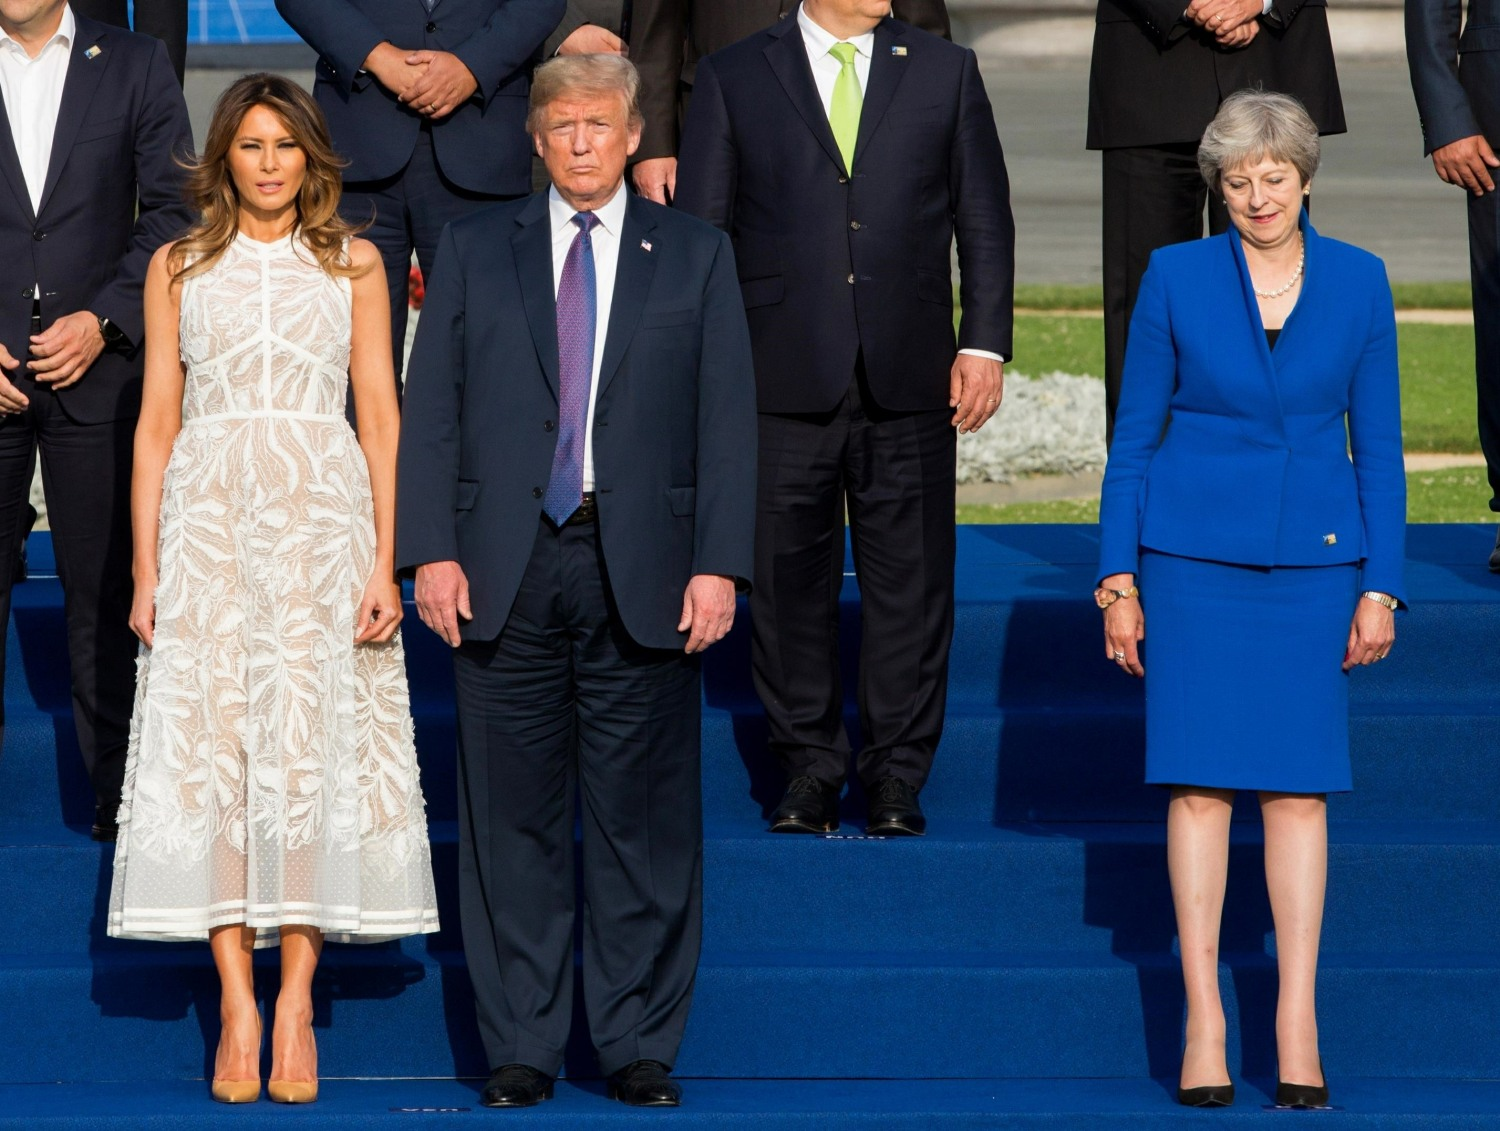 Arrivals at the dinner of the NATO summit in Brussels